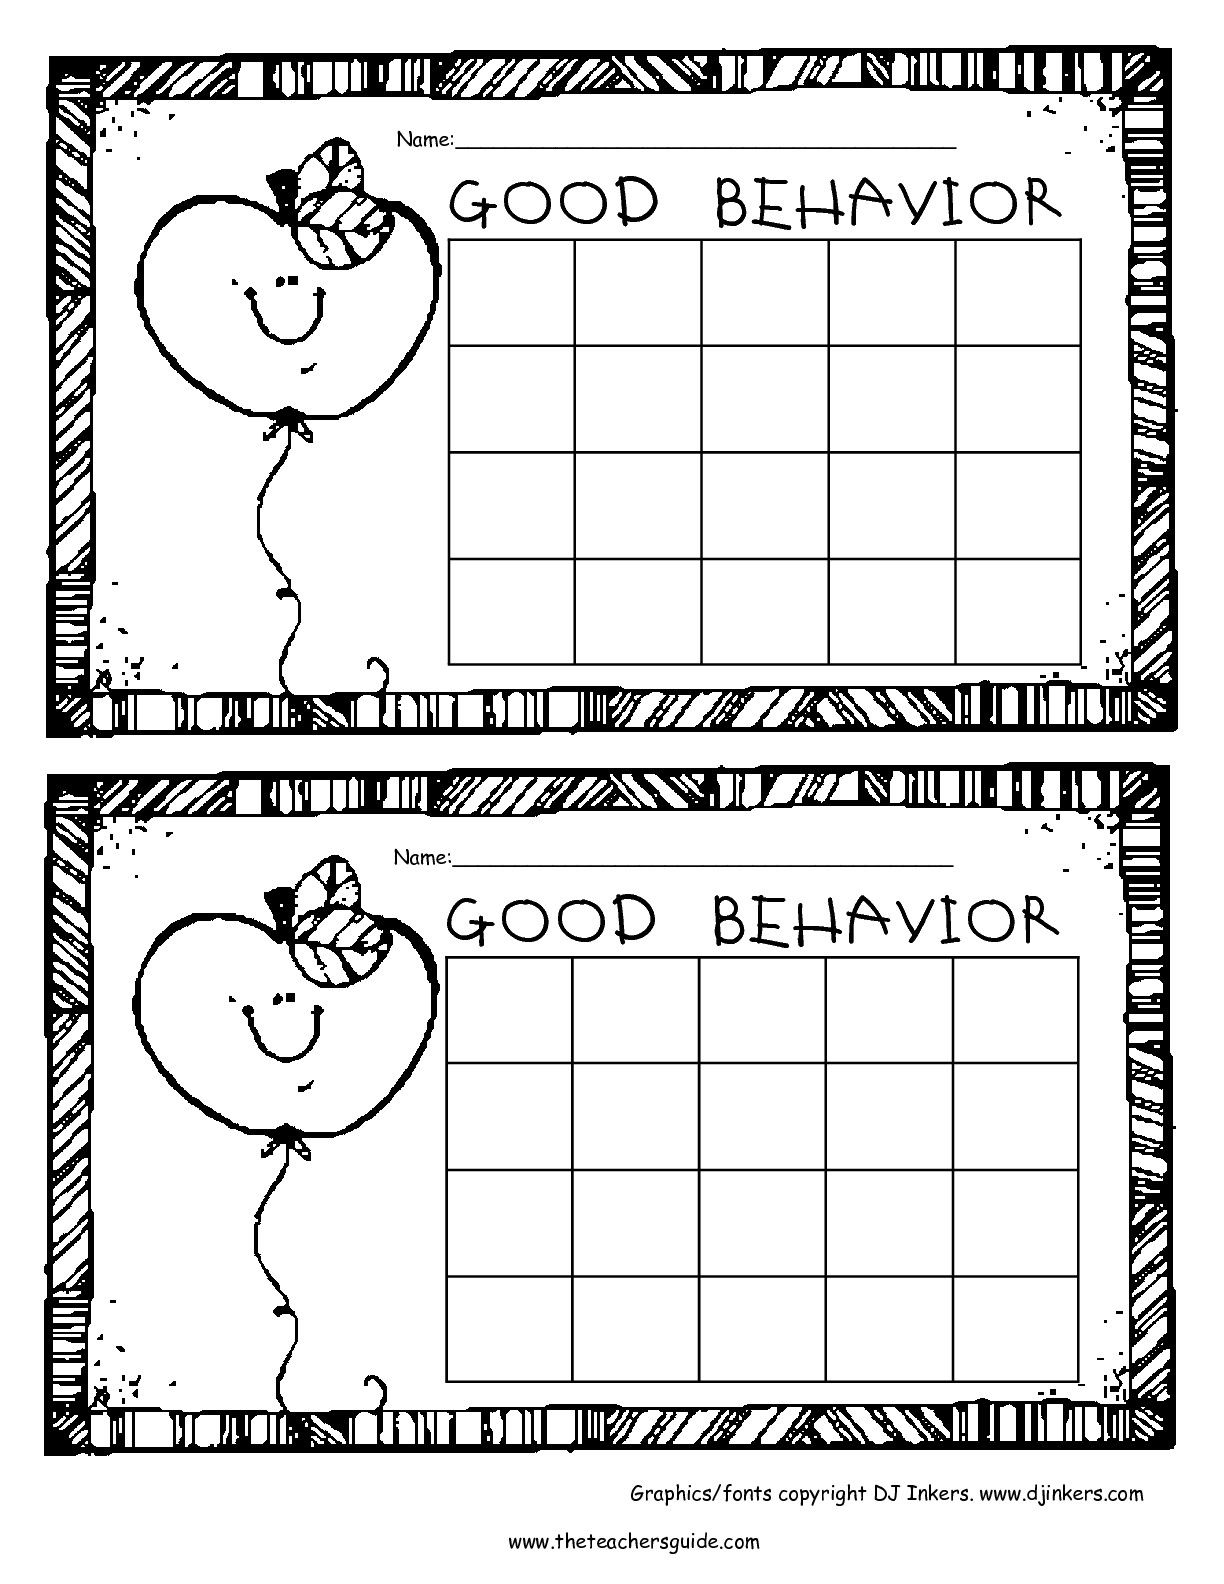 Free Printable Reward And Incentive Charts | Rewards | Free throughout Free Printable Behavior Charts For Kindergarten